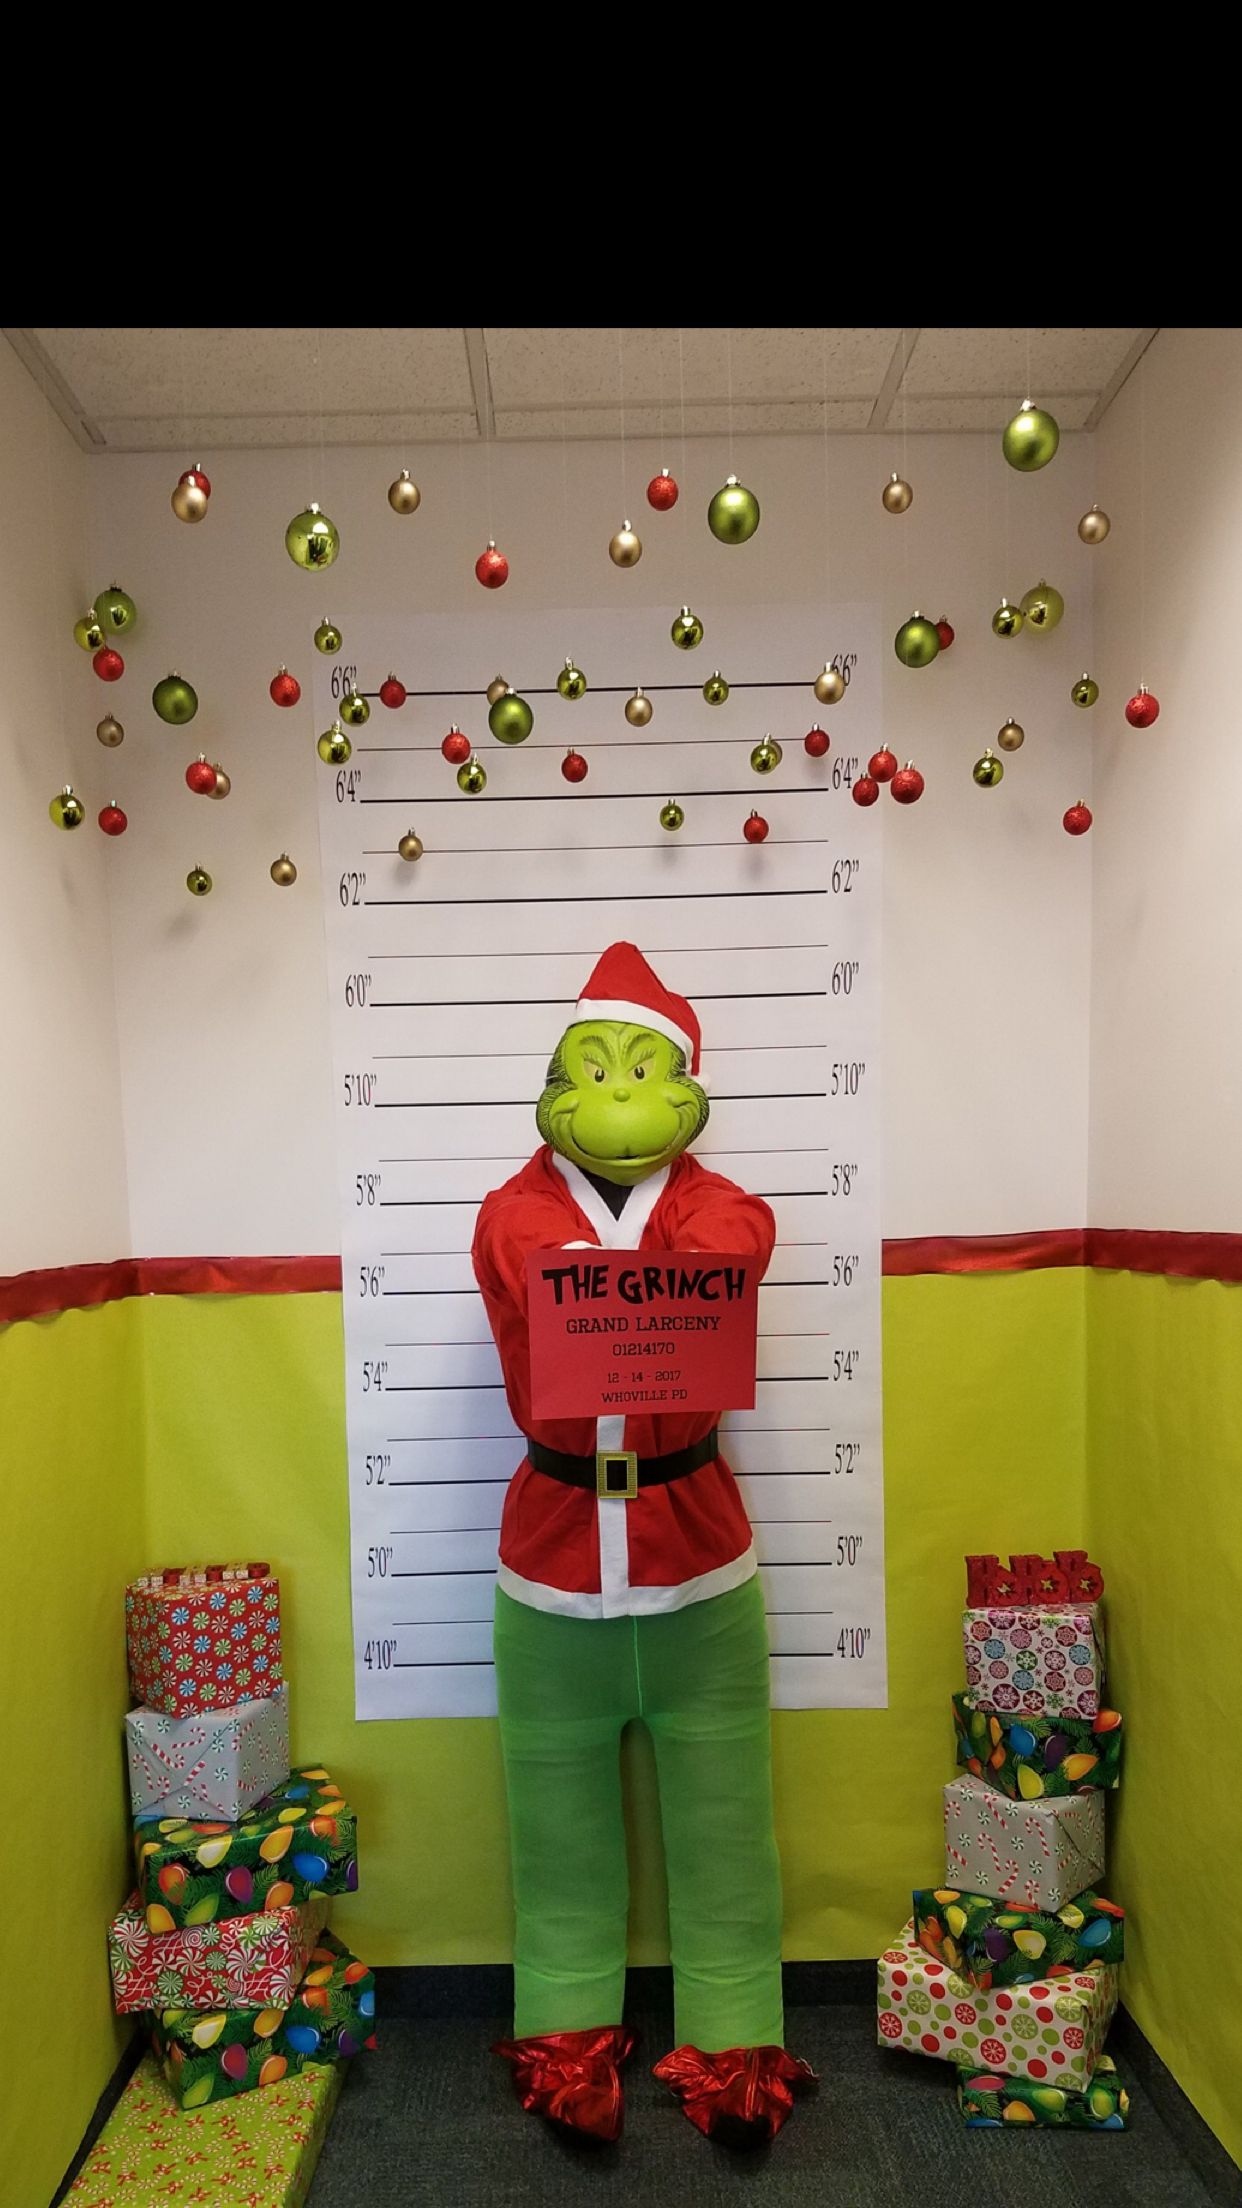 Whoville Office Decorations How The Grinch Stole Christmas Photo